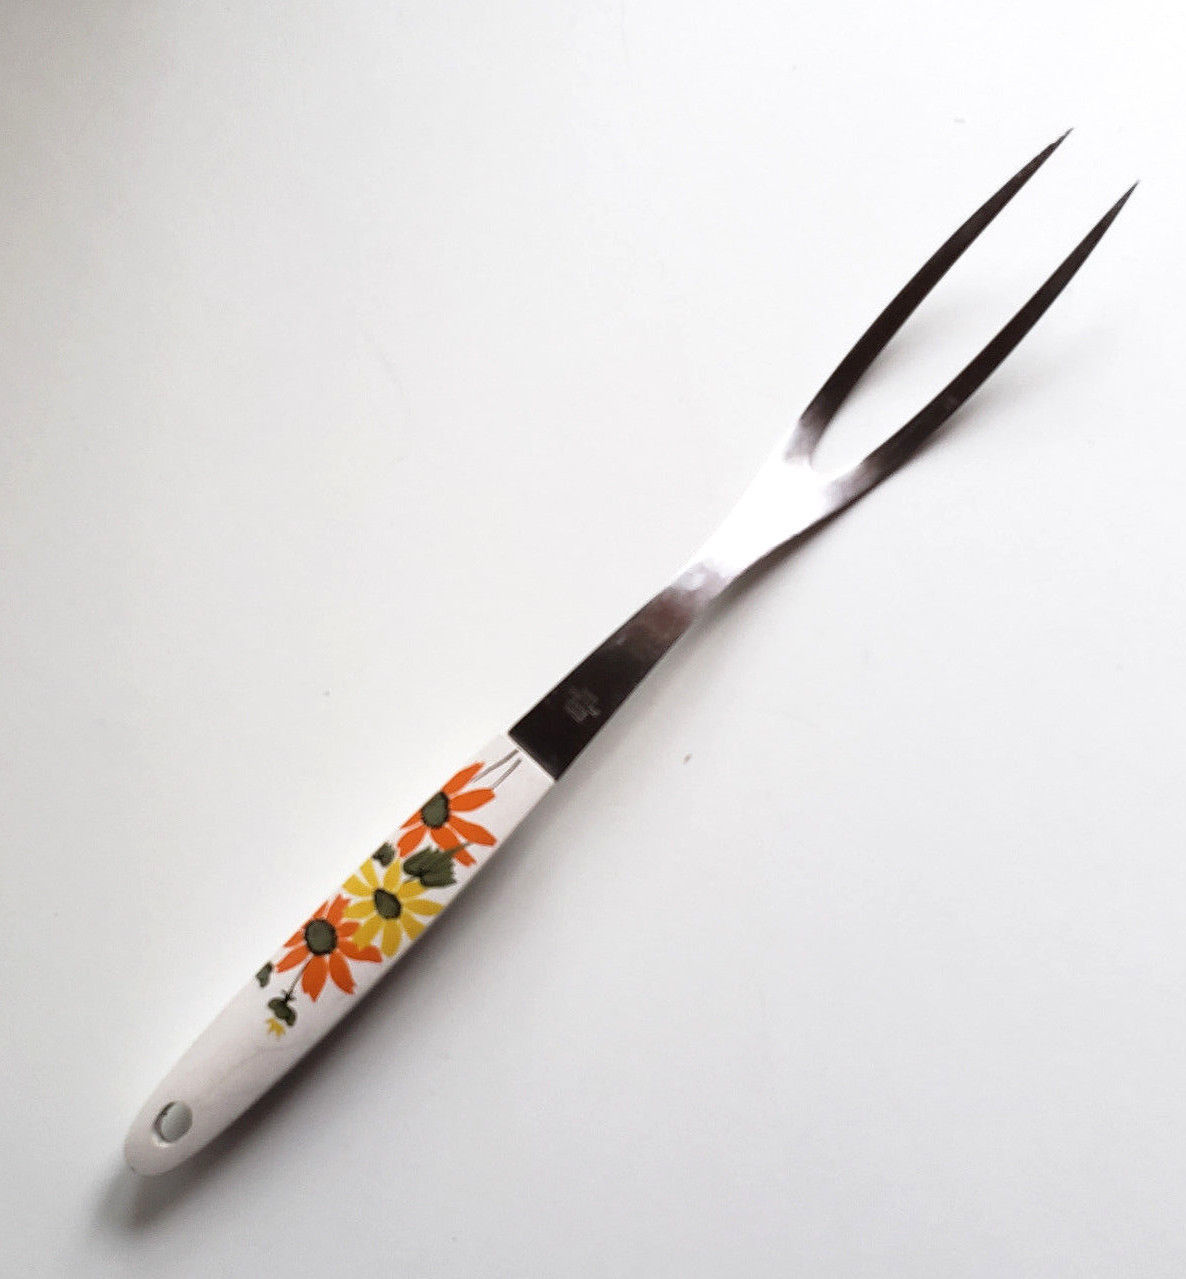 Ekco MCM Meat Carving Fork White Handle Orange Yellow Flowers USA Stainless image 2